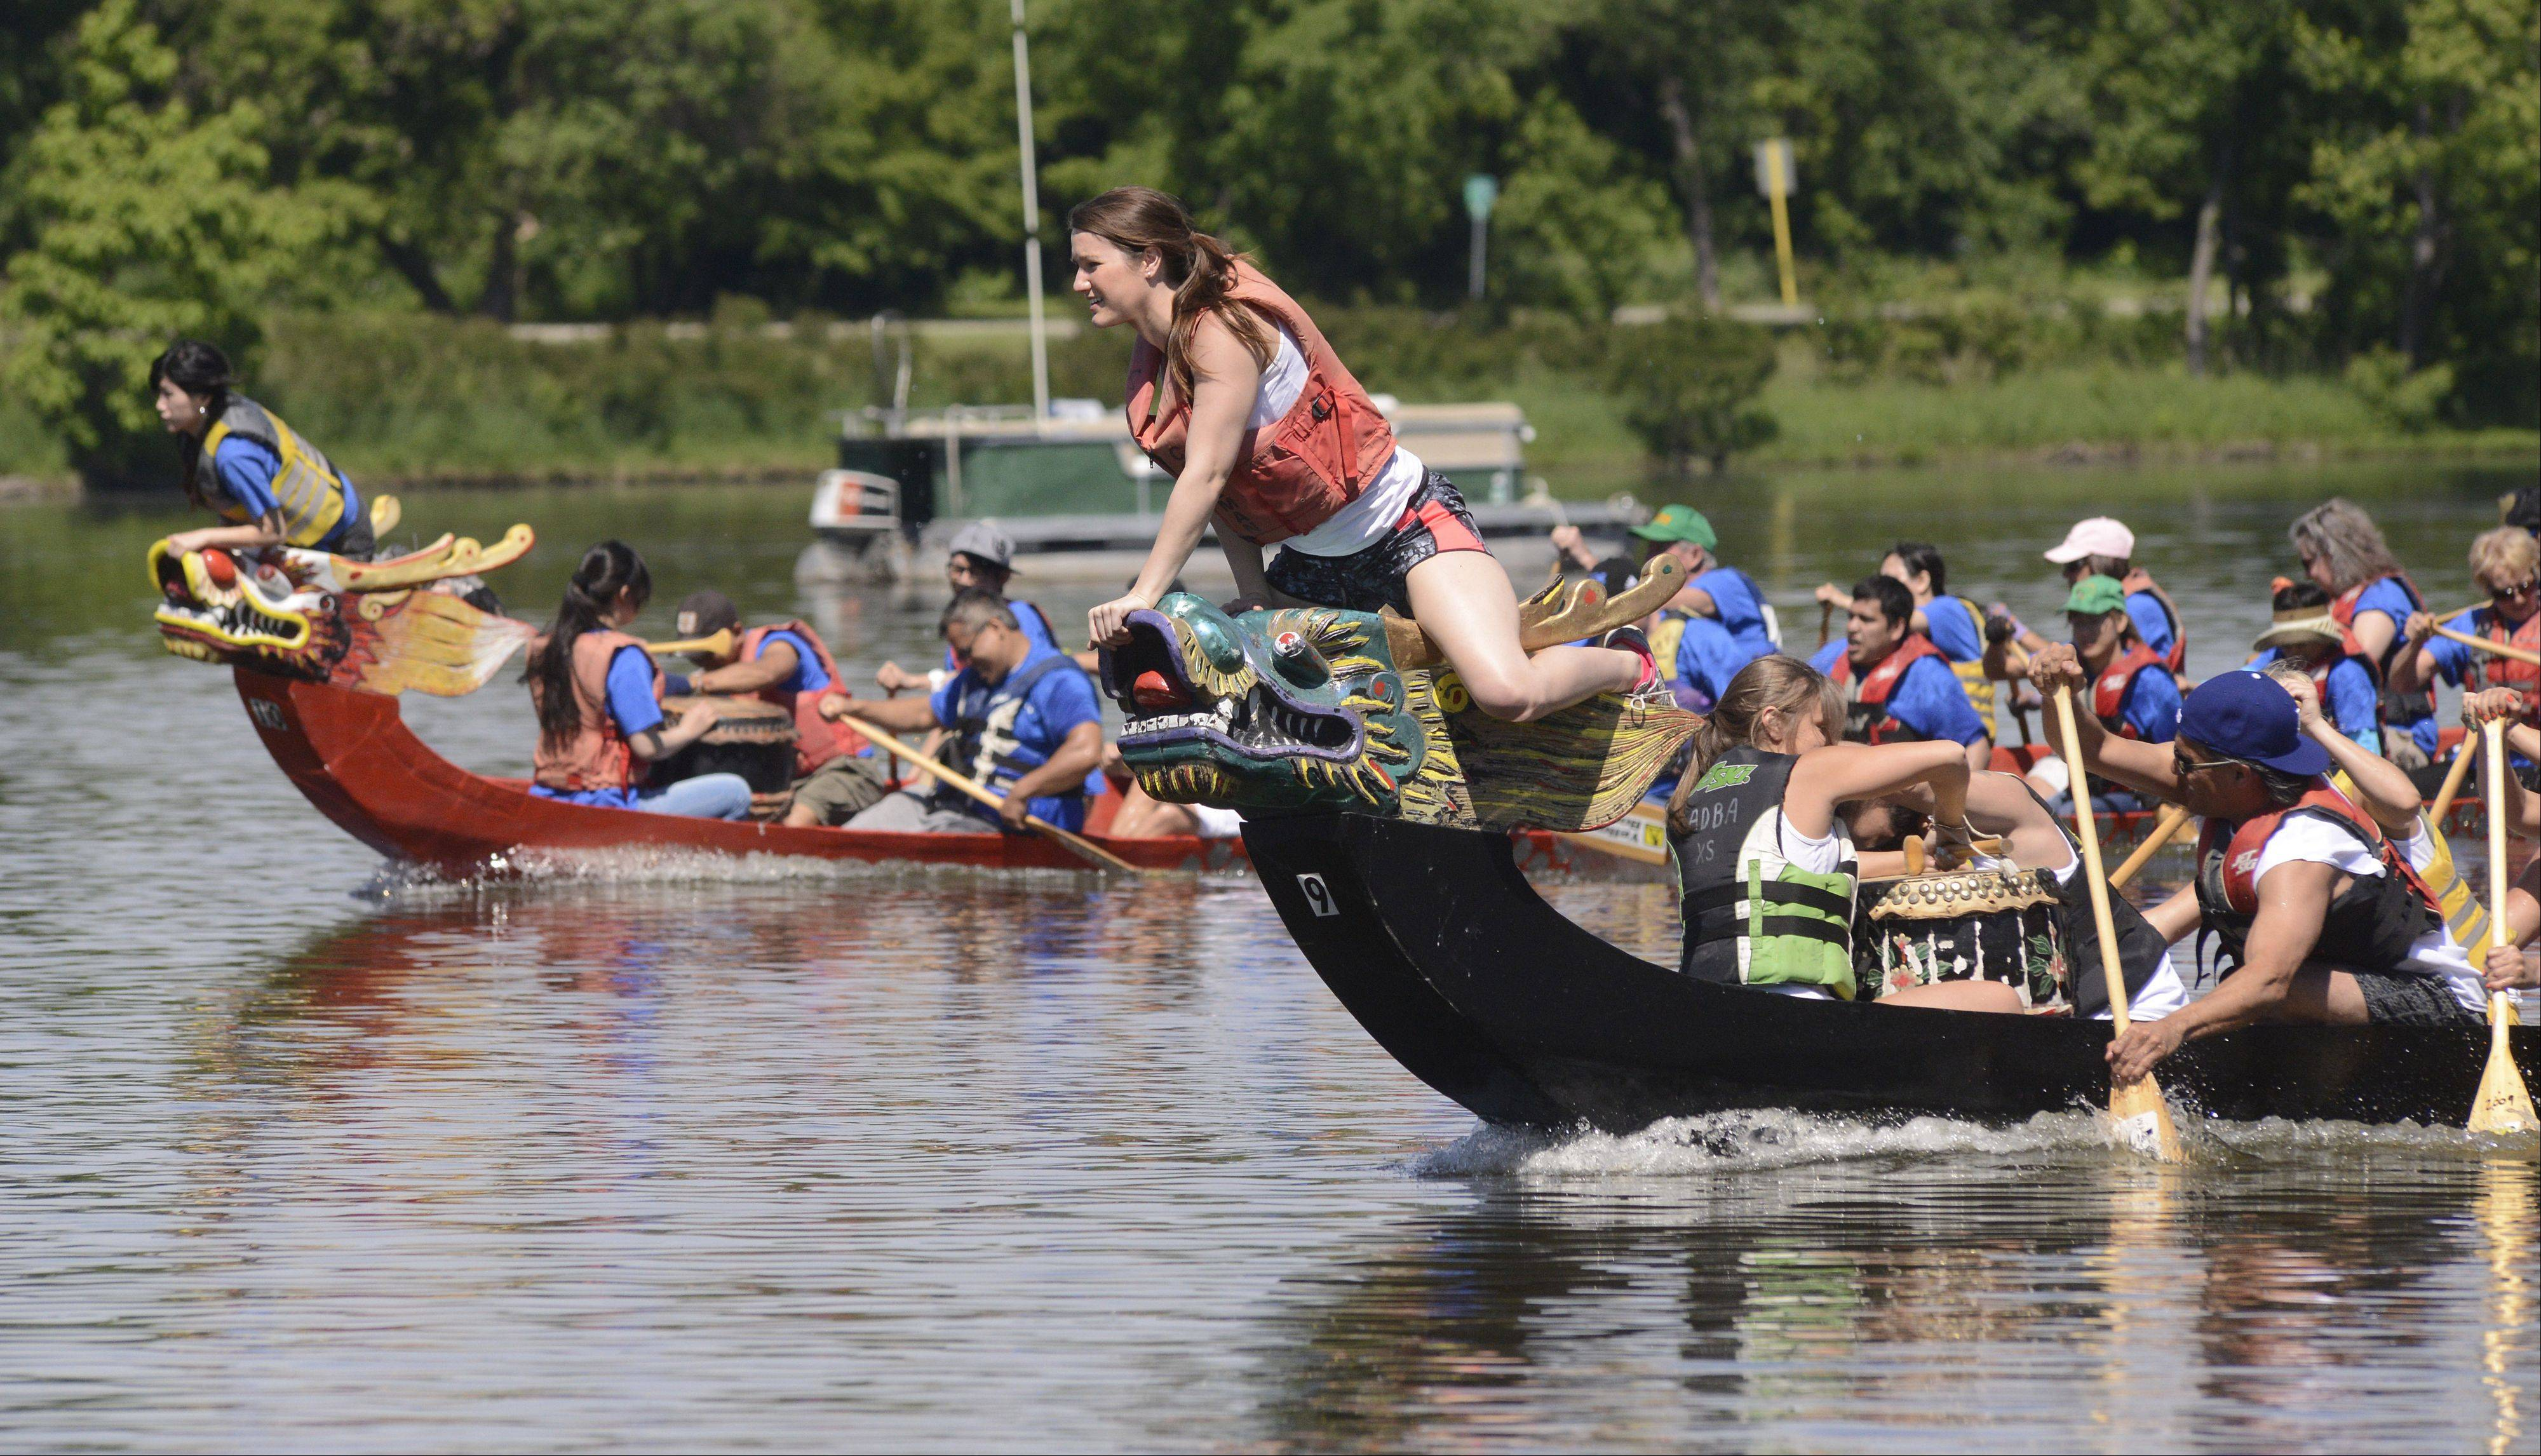 Ally Ferrandino of the Rookies Bar and Grill dragon boat team is ready to grab the flag for the win while racing Elgin Community College's team in the time trials at the St. Charles RiverFest on Saturday.